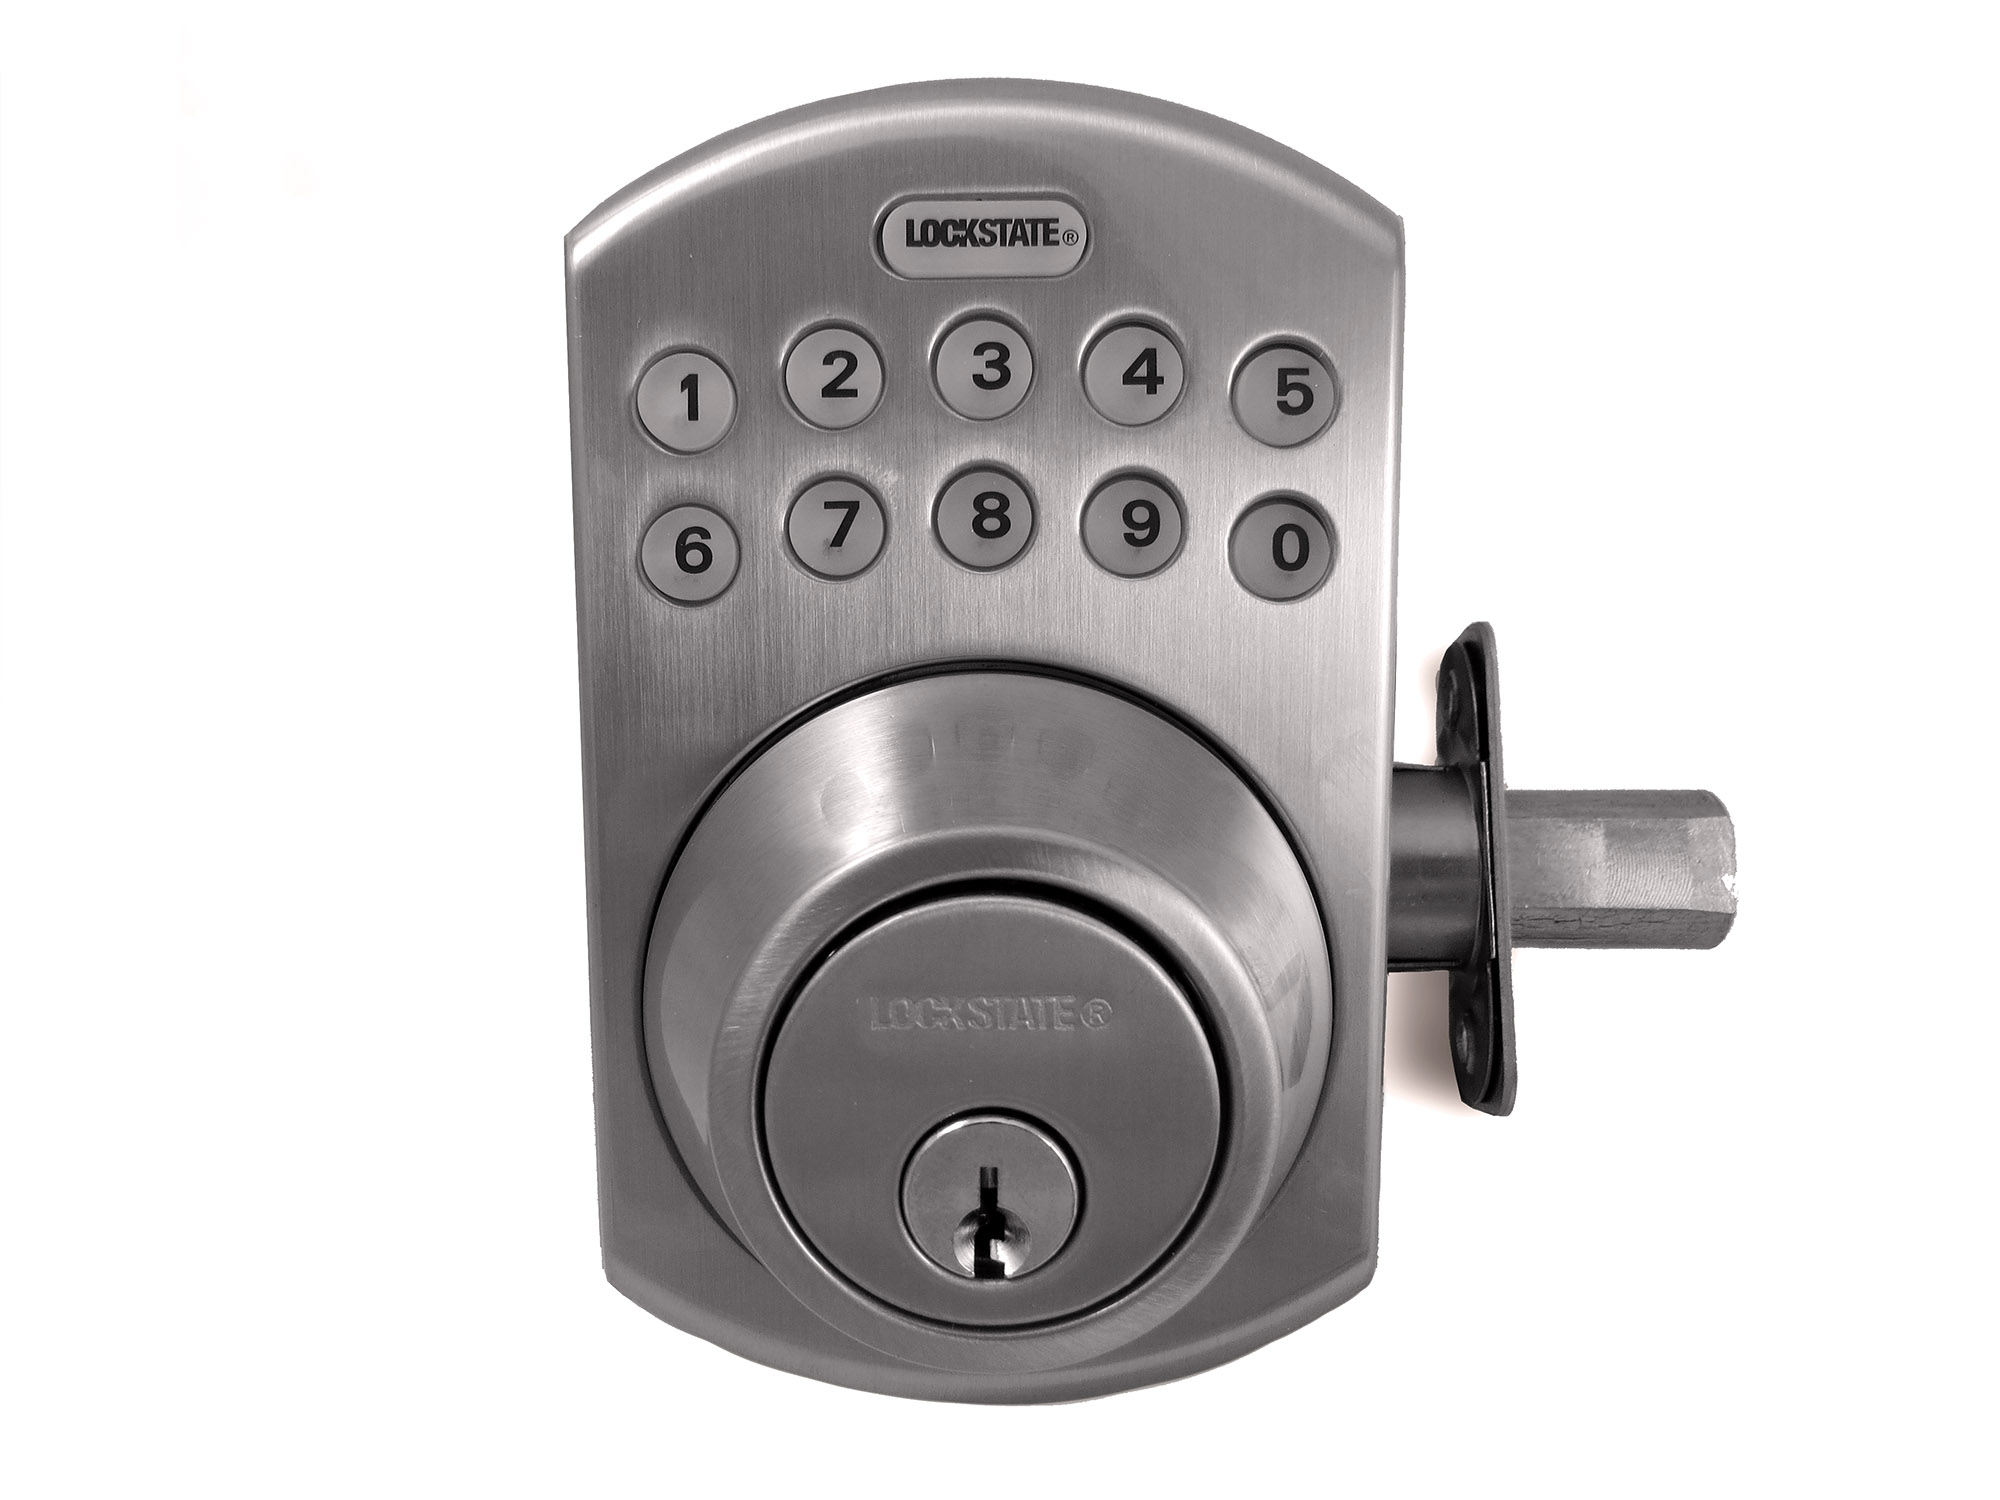 LockState RemoteLock WiFi Deadbolt 5i-B